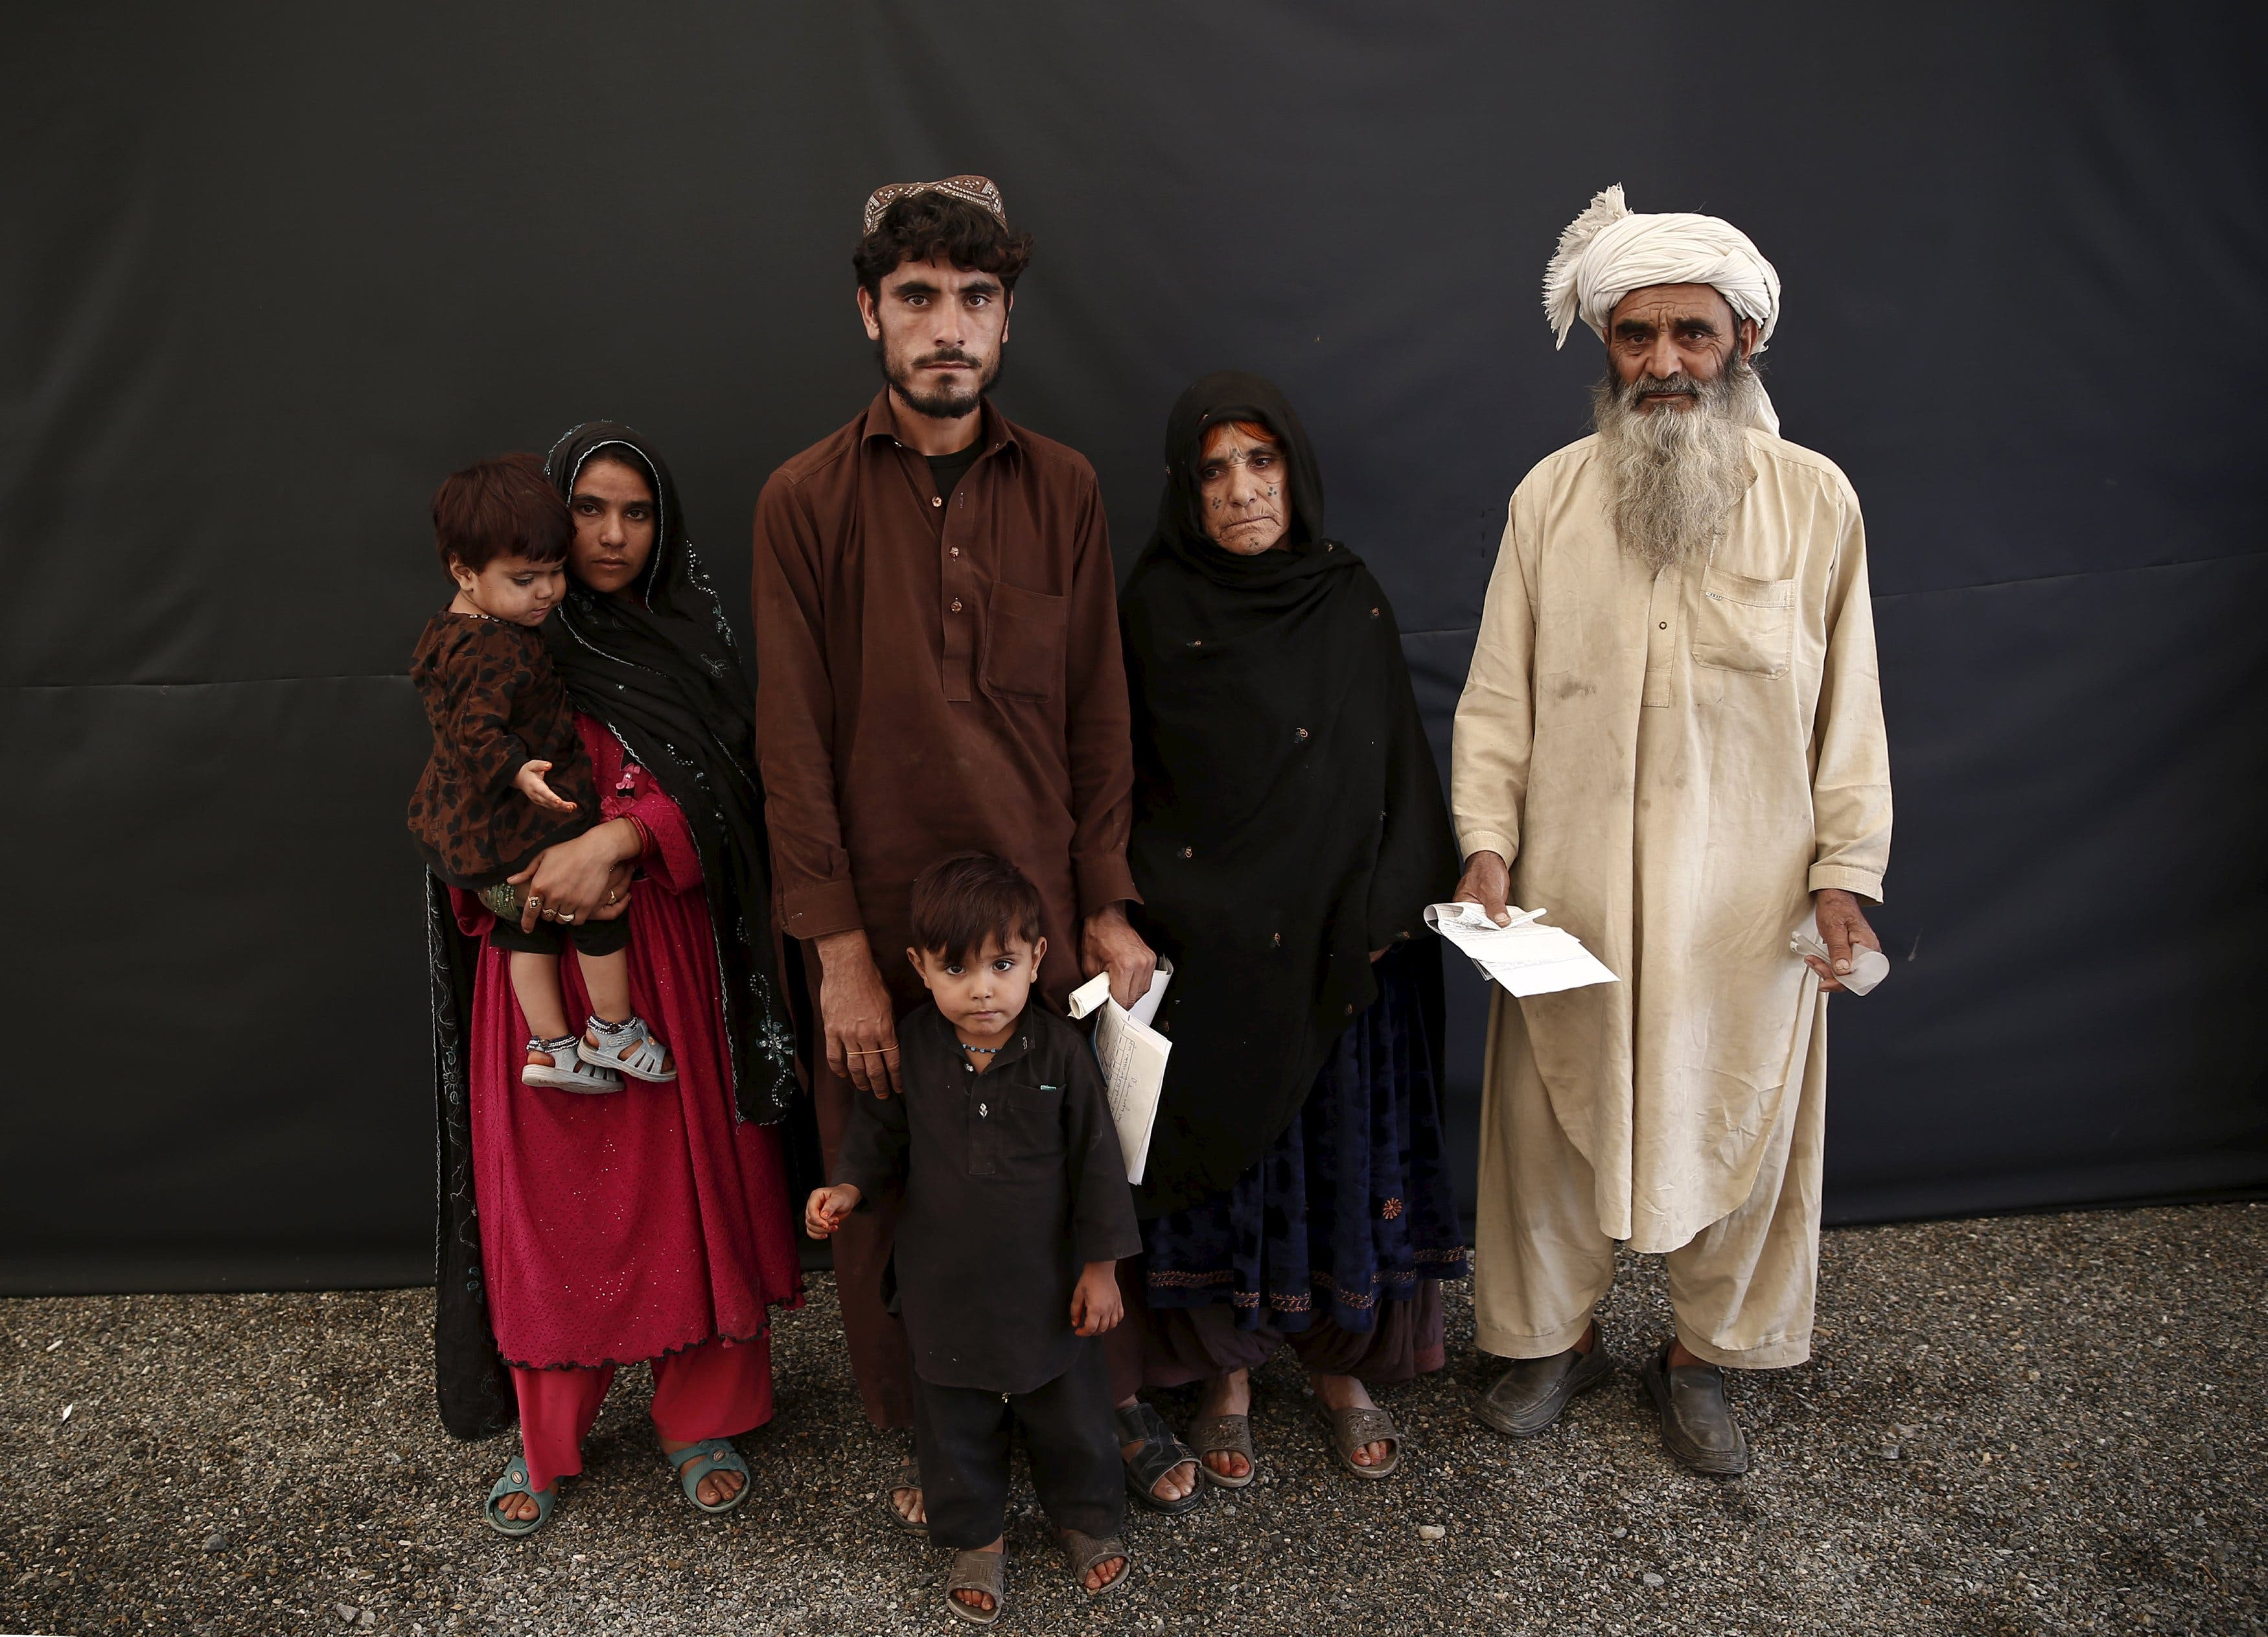 Rahim Khan (R) poses for a picture with his family after they arrive at a United Nations High Commissioner for Refugees (UNHCR) registration centre in Kabul, Afghanistan August 26, 2015. reuters